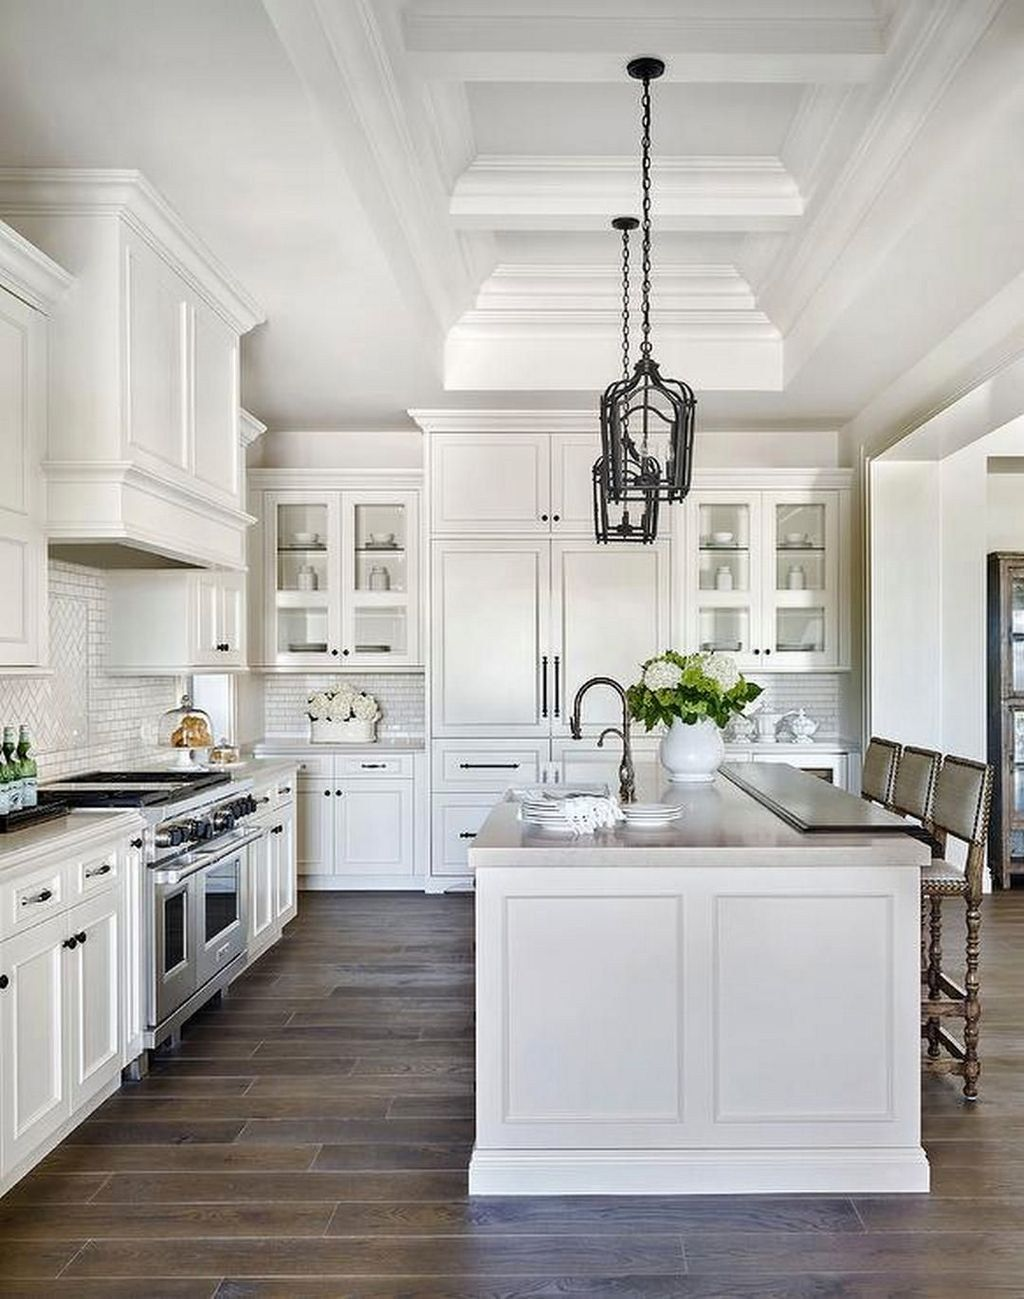 34 Luxury Farmhouse Kitchen Design Ideas To Bring Modern Look - Trendehouse